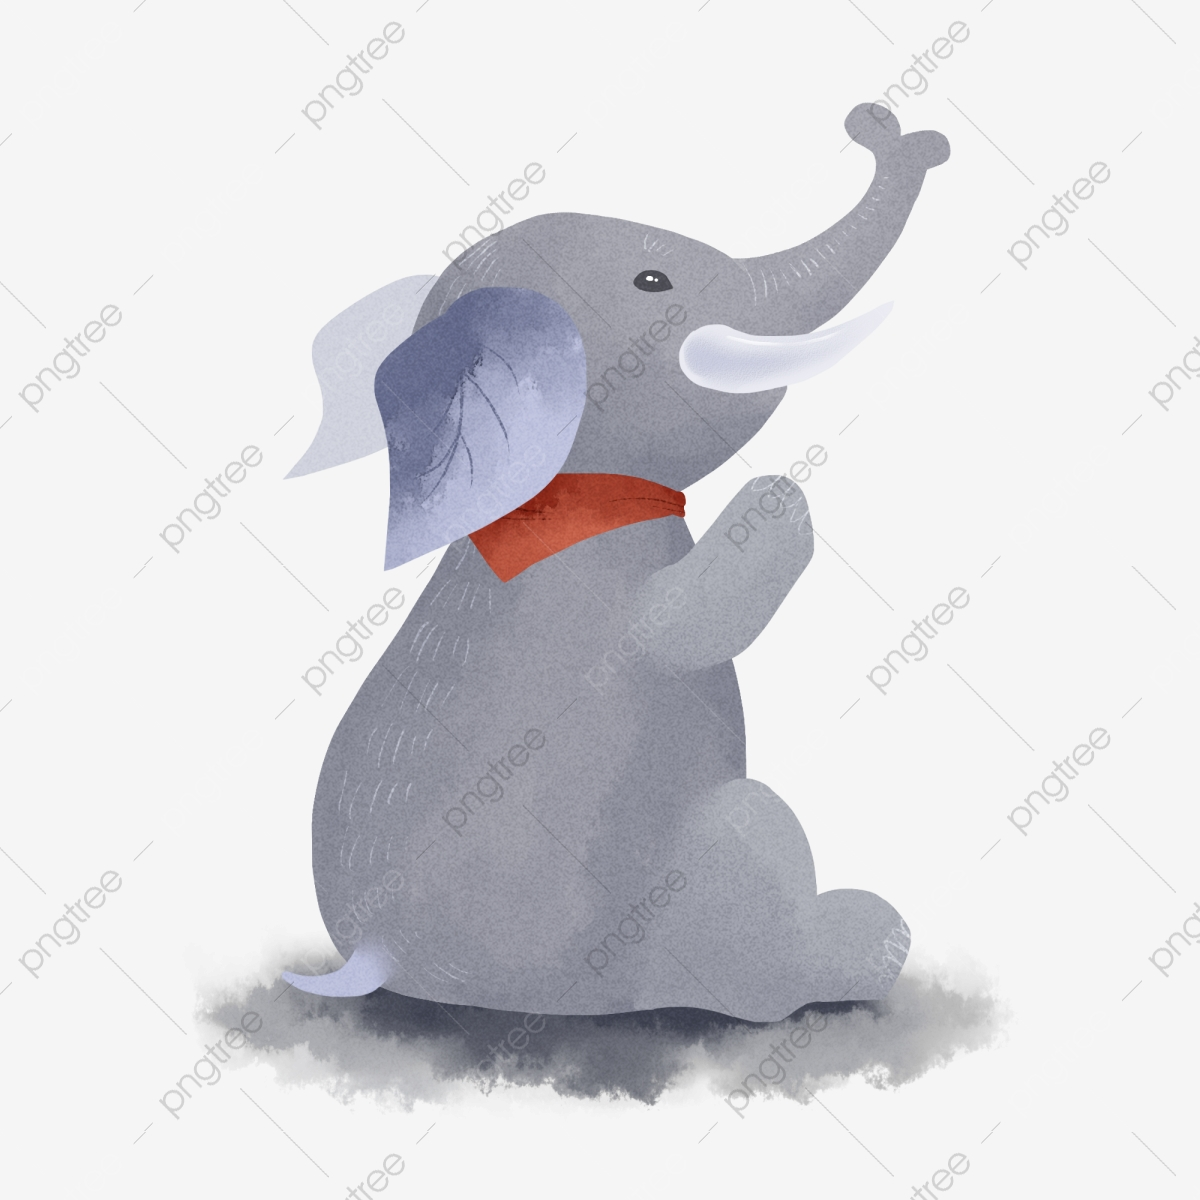 Elephant Vector Elephant Clipart Elephant Elephant Nose Png Transparent Clipart Image And Psd File For Free Download African bush elephant indian elephant graphy, rejection elephant nose, mammal, people, wildlife png. pngtree